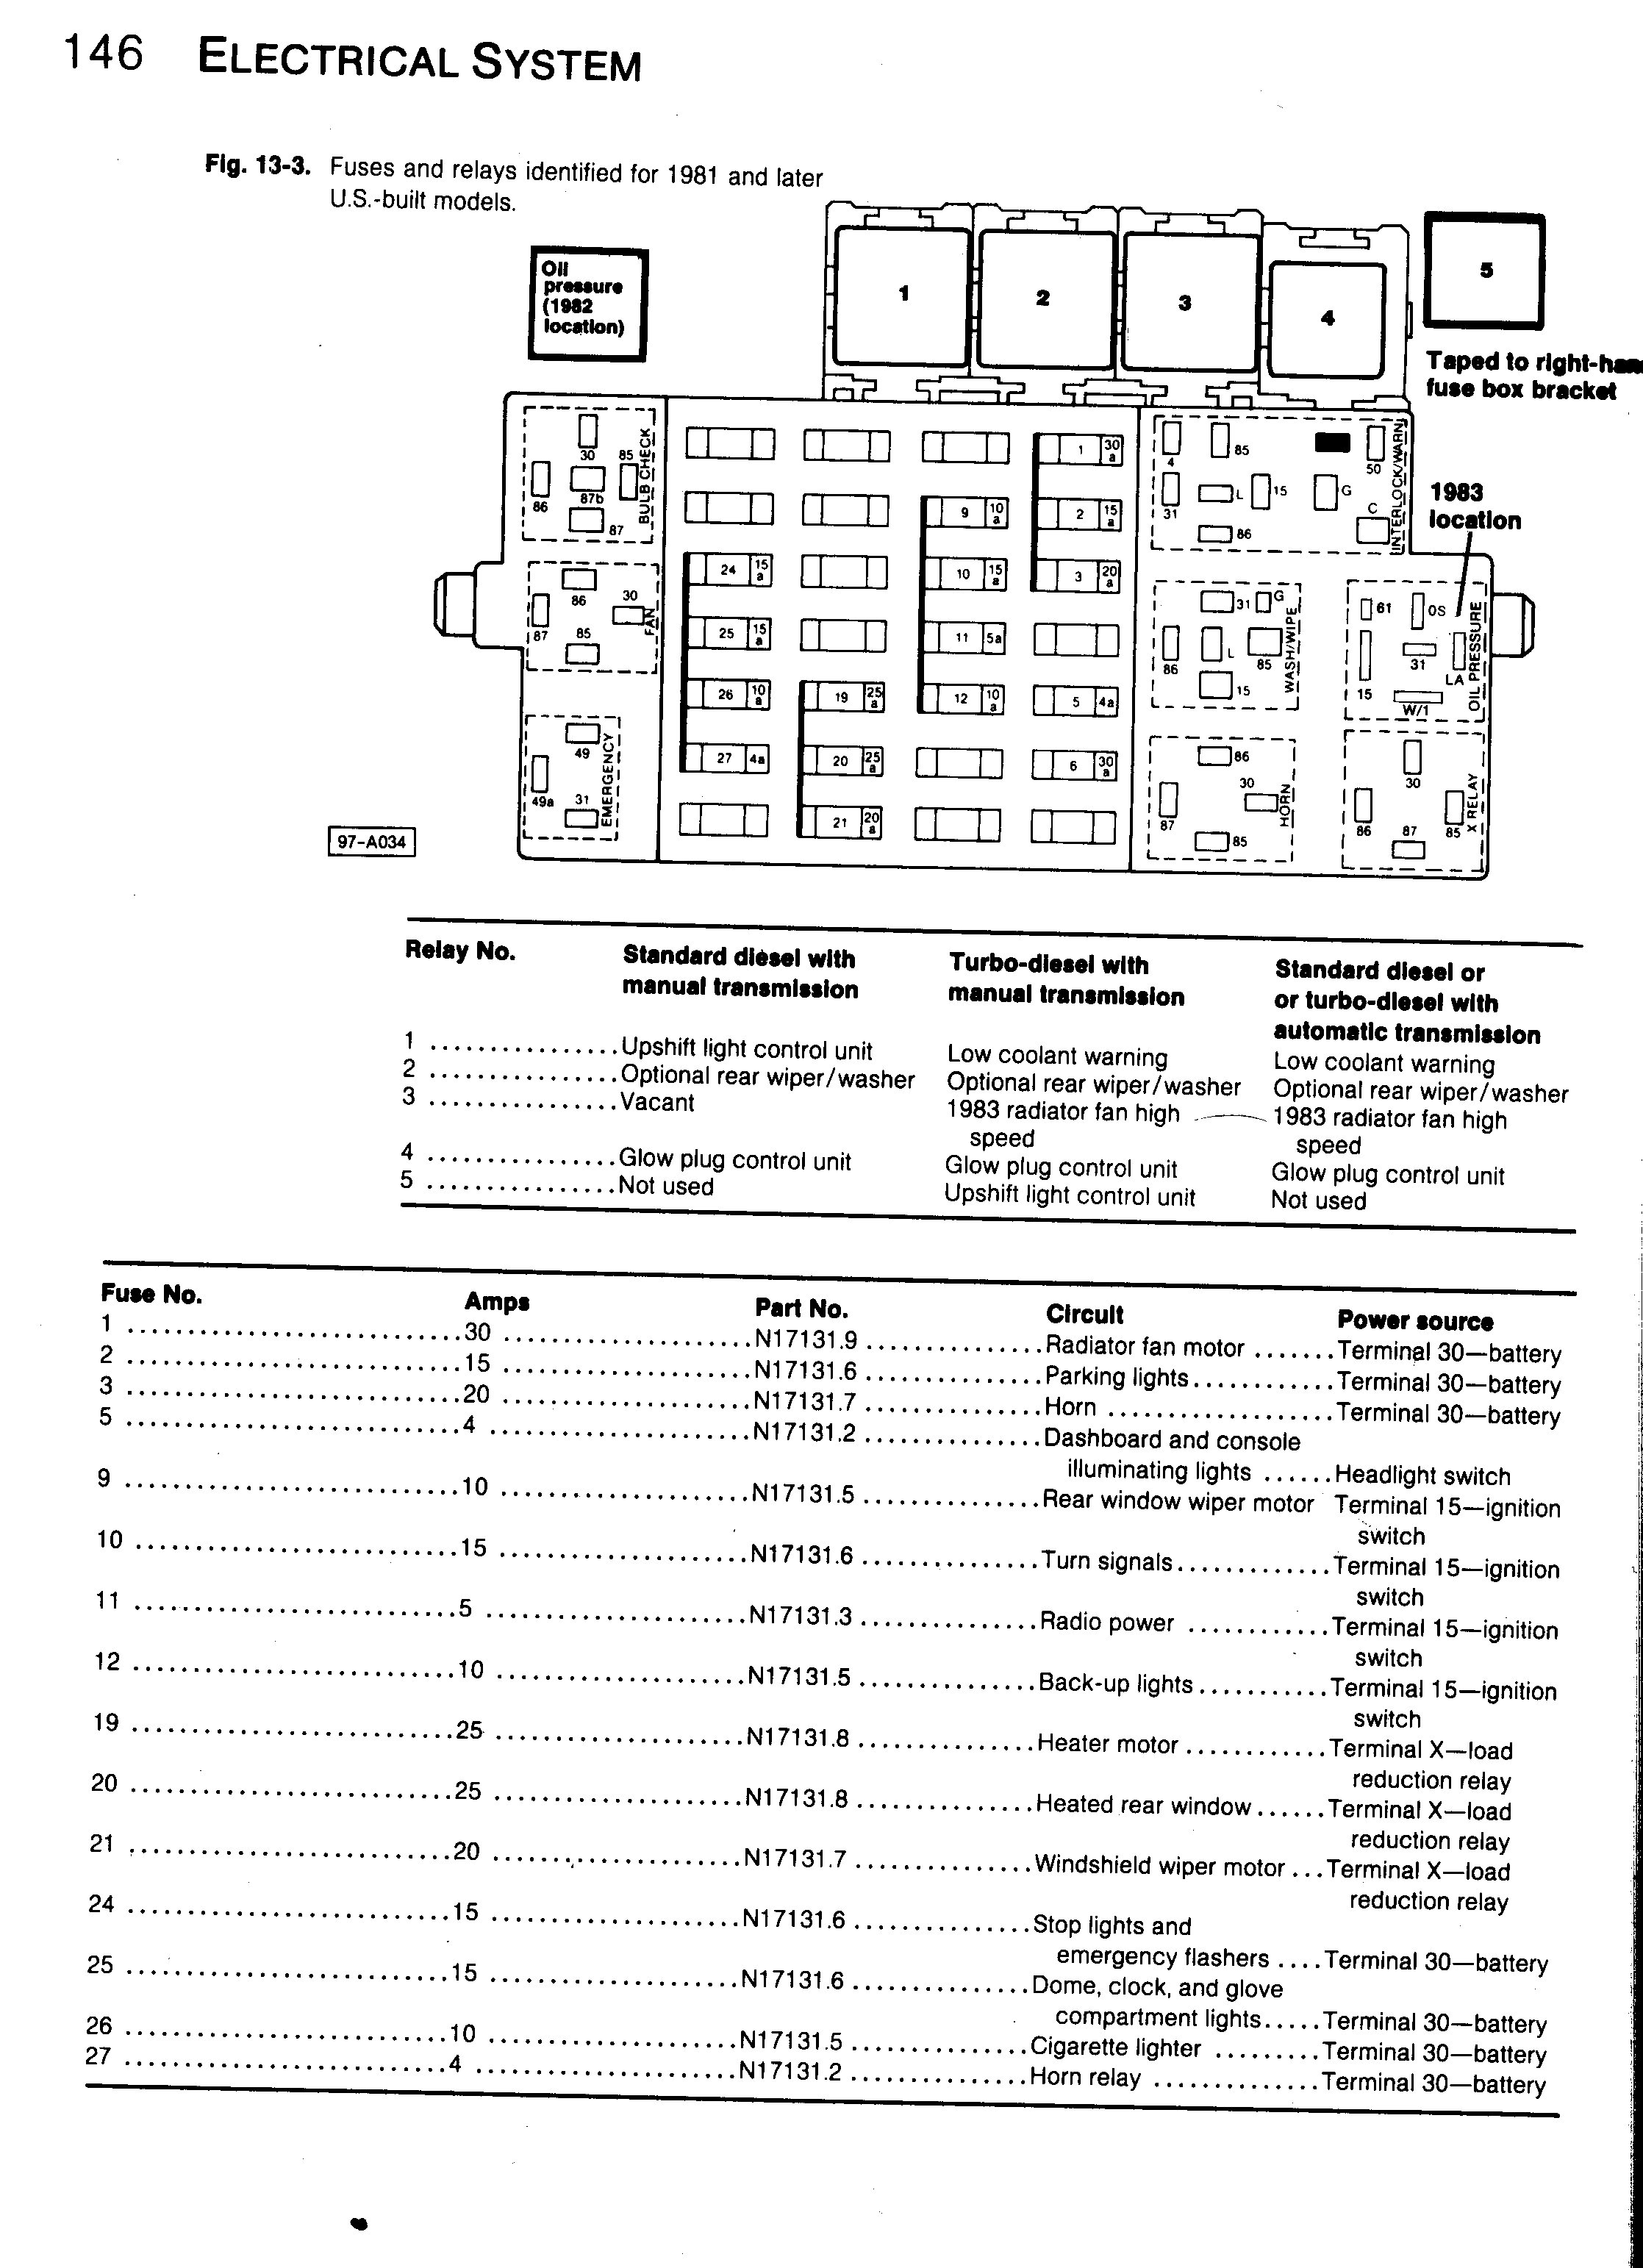 uxd_967] 2002 vw jetta fuse box diagram | wave-advice wiring diagram site |  wave-advice.goshstore.it  gosh